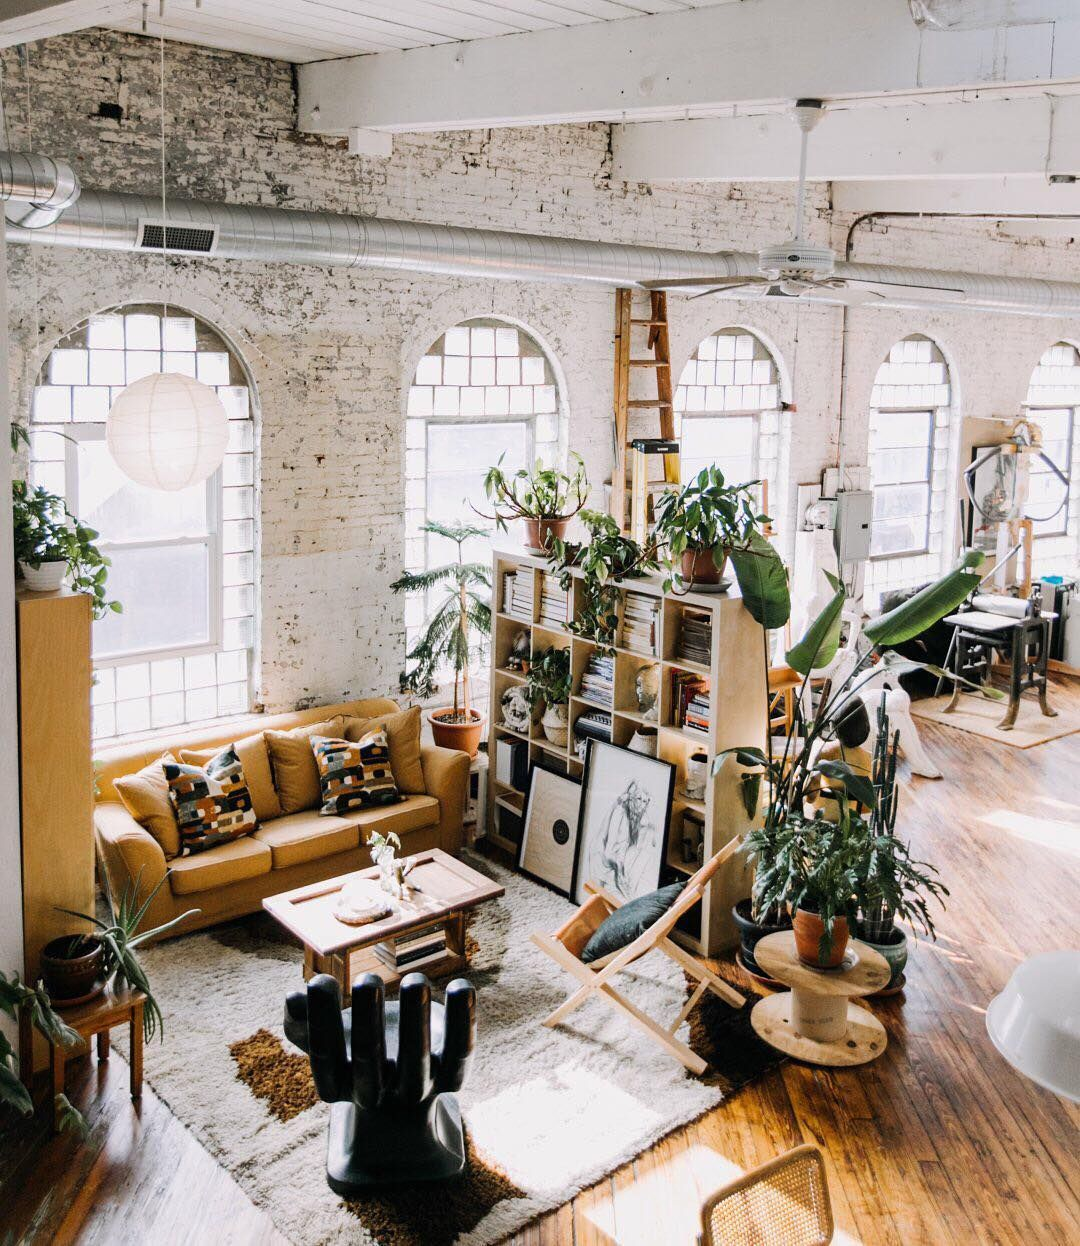 Natural lighting futura lofts Lofts Yhome Apartment Therapy apartmenttherapy On Instagram this Naturallight Filled Loft Space Was Originally Part Of An Old Textile Factory In The Northernu2026 Apartment Home Living Apartment Therapy apartmenttherapy On Instagram this Natural